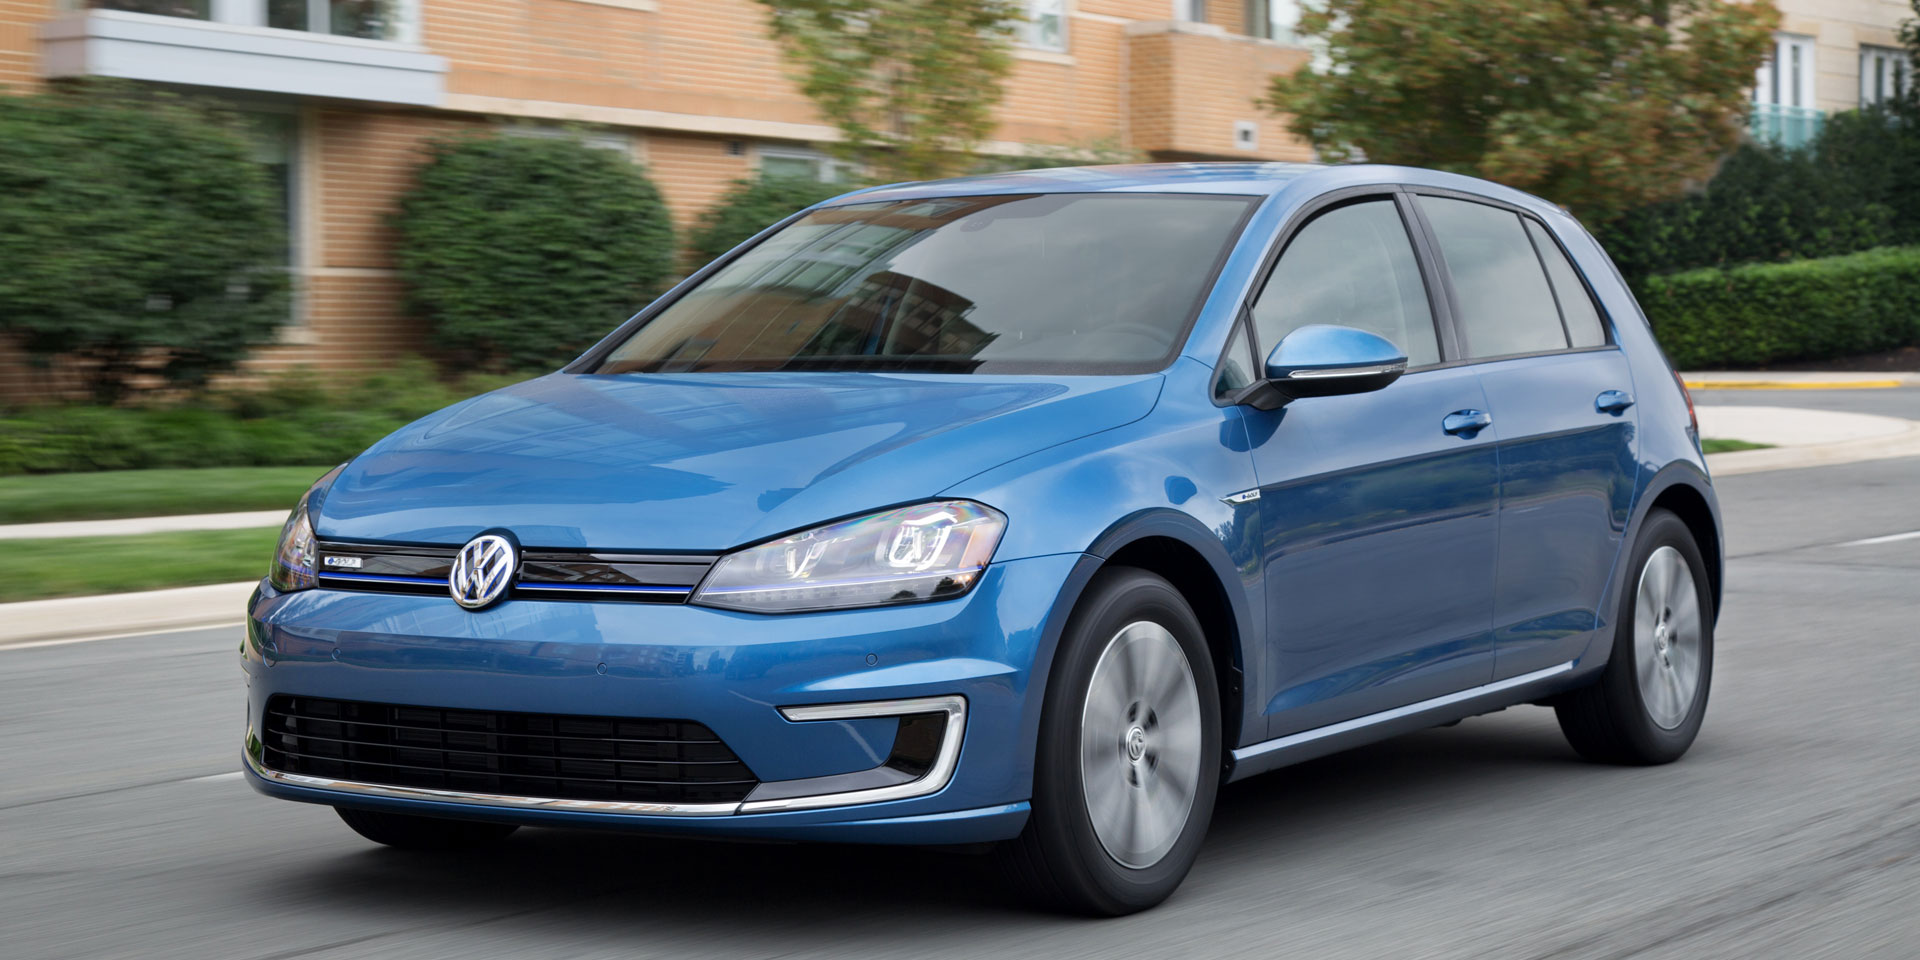 2015 Volkswagen E-golf #20